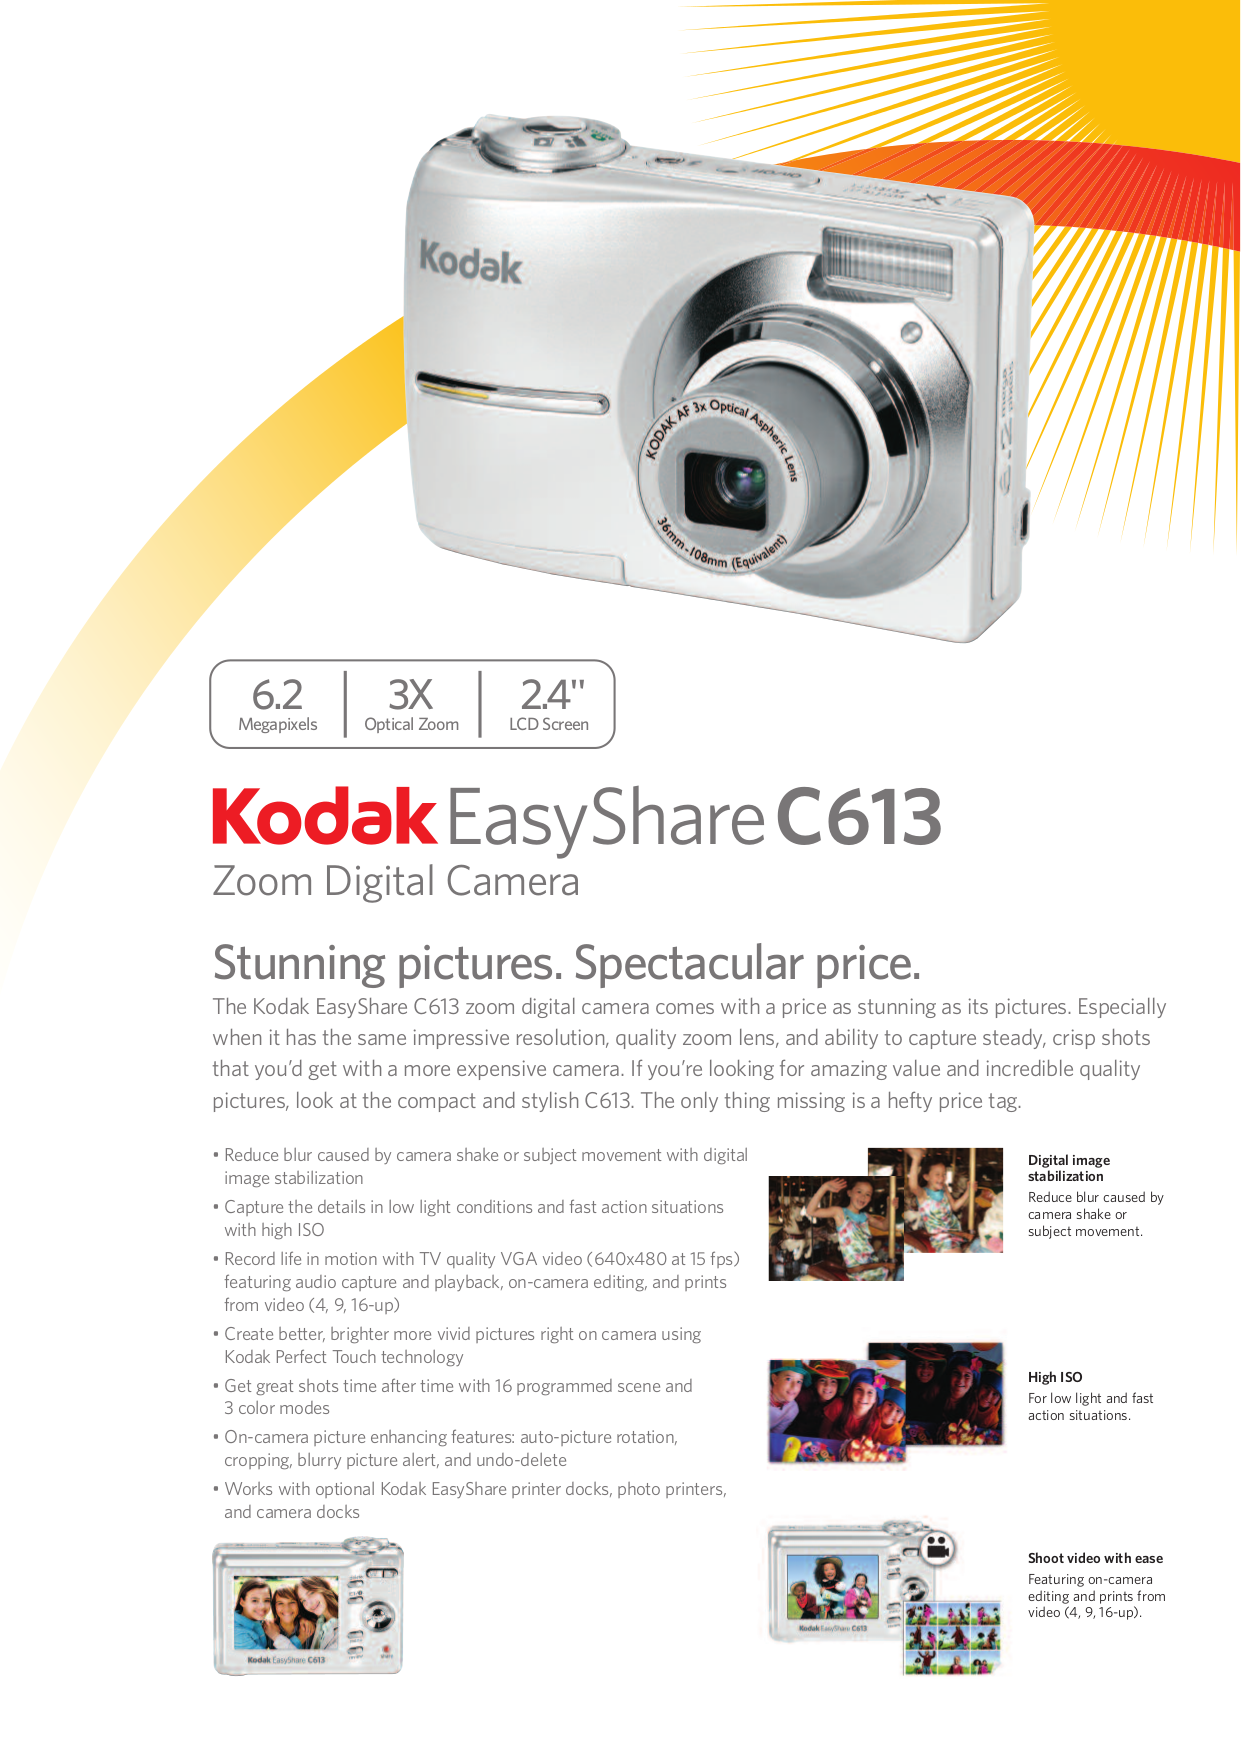 Download kodak easyshare c613.